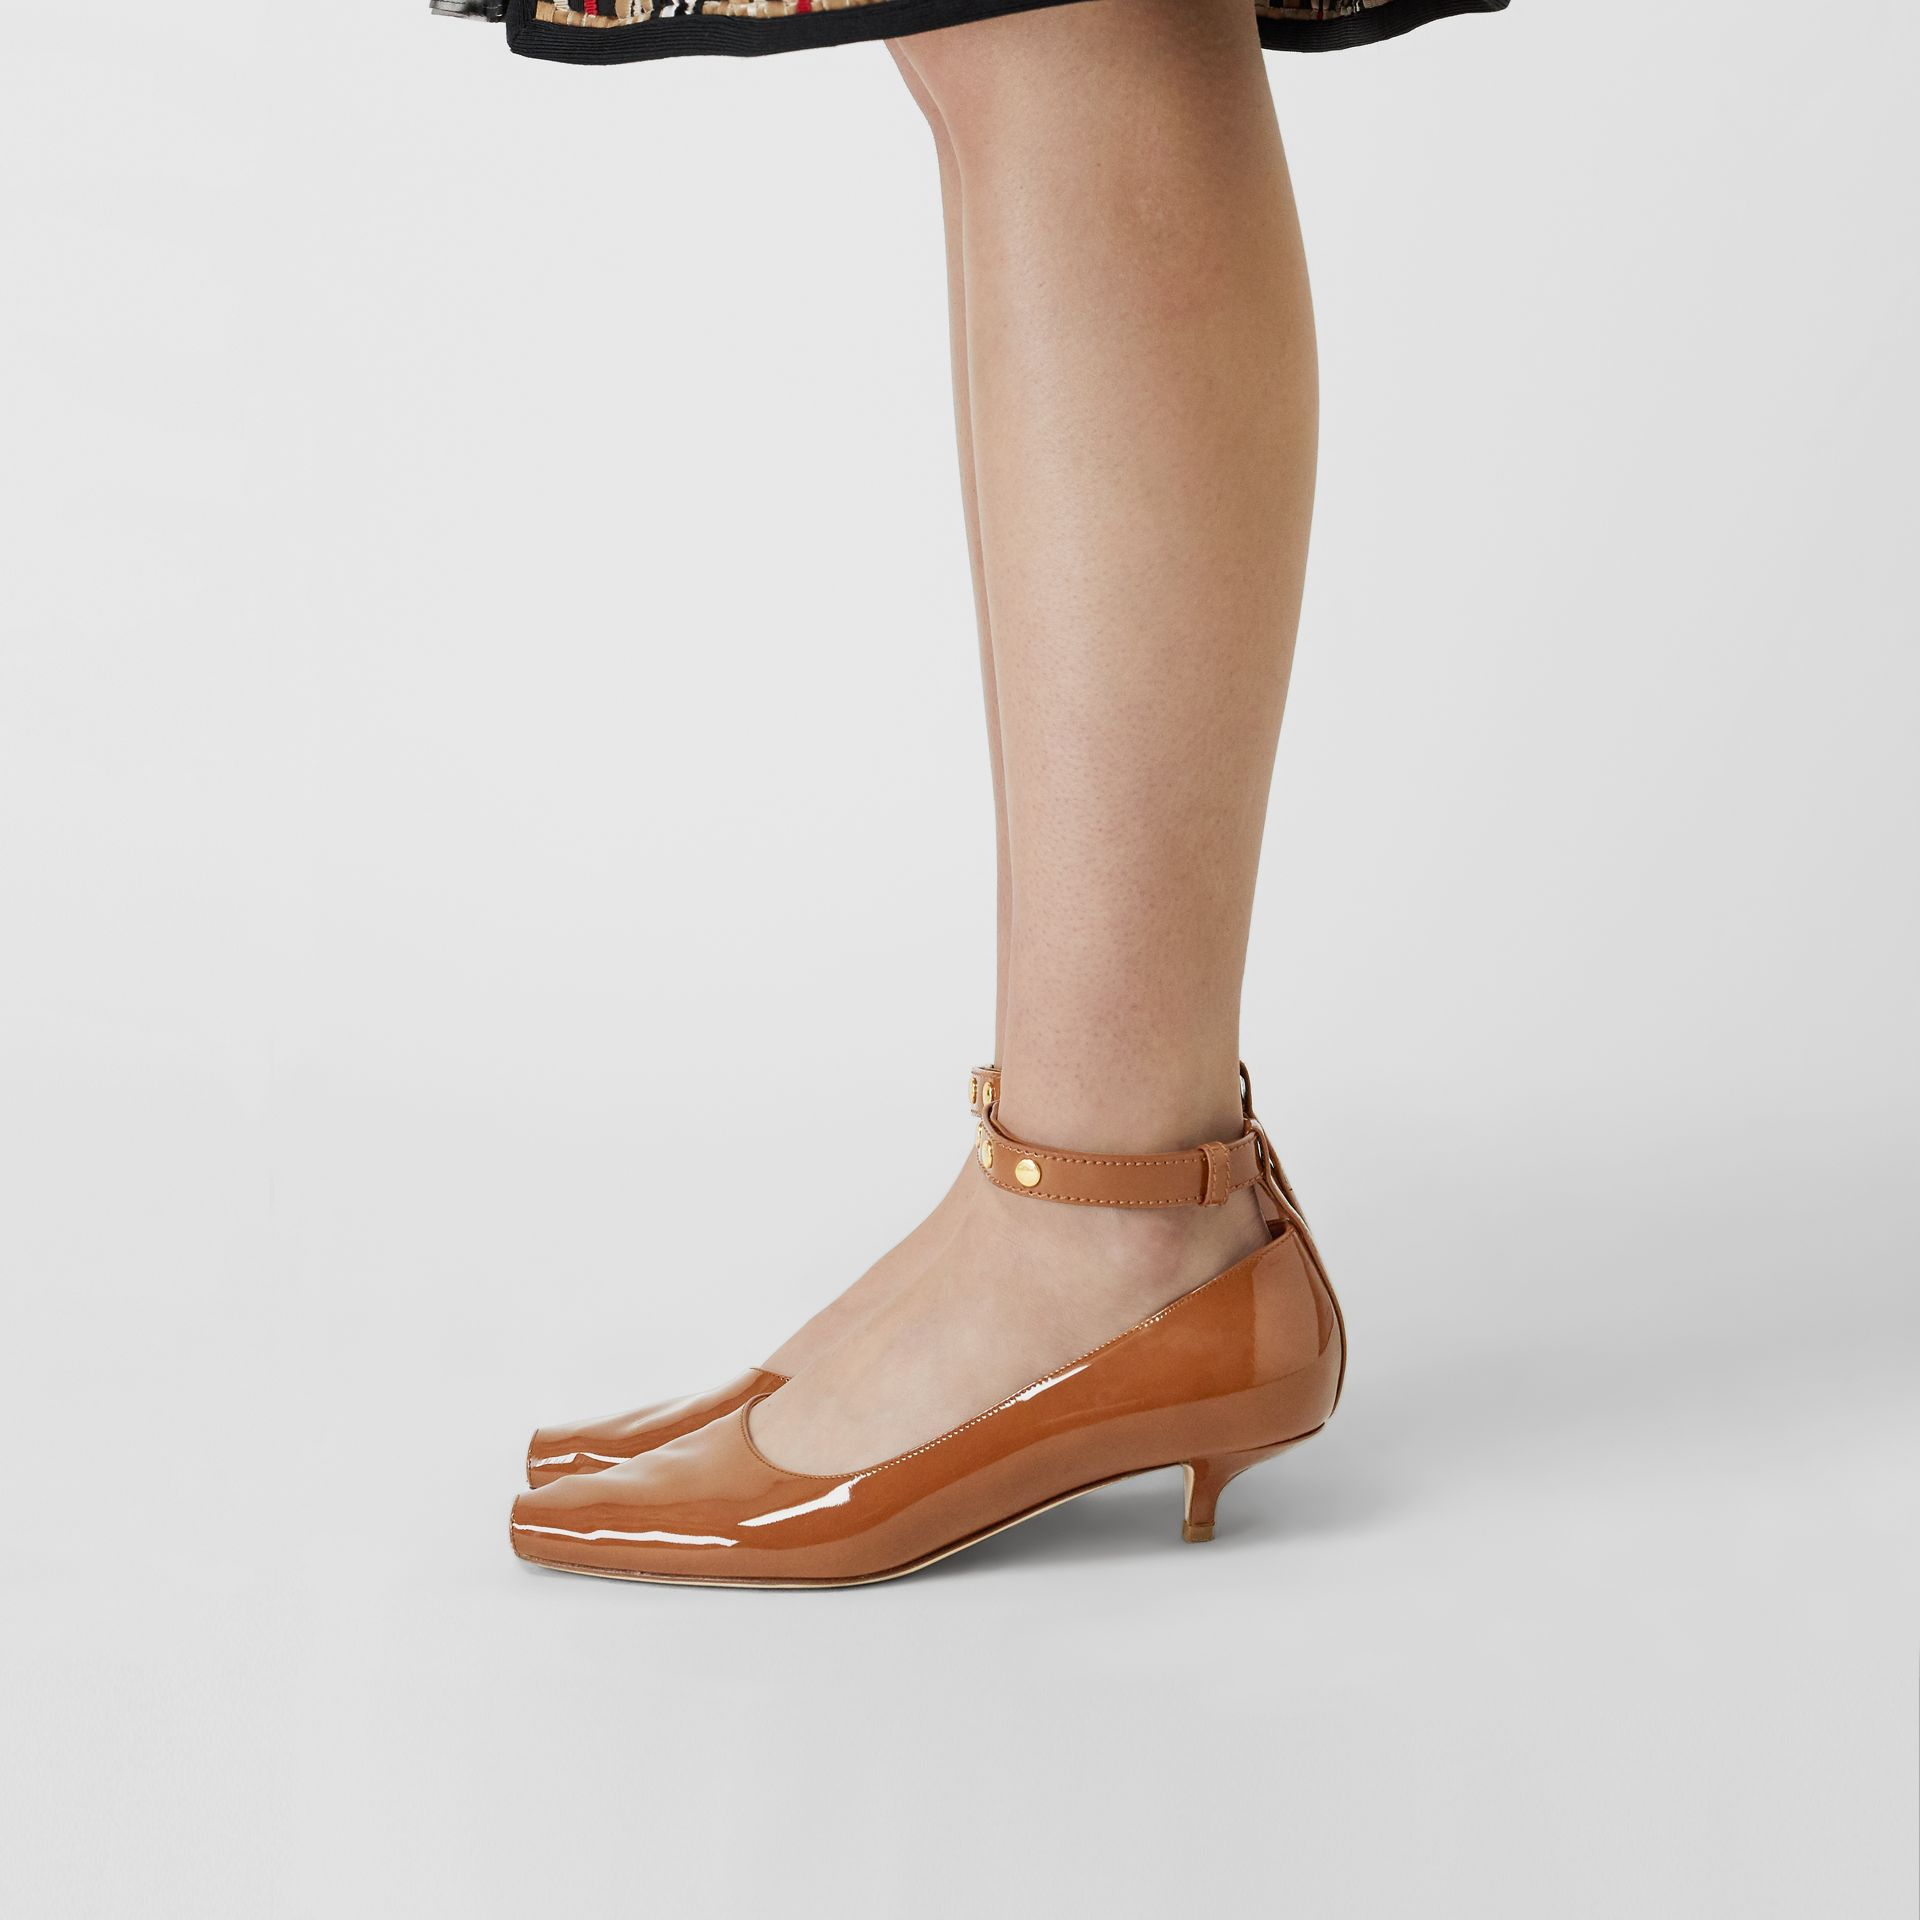 Patent Leather Peep-toe Kitten-heel Pumps in Tan - Women | Burberry - gallery image 2